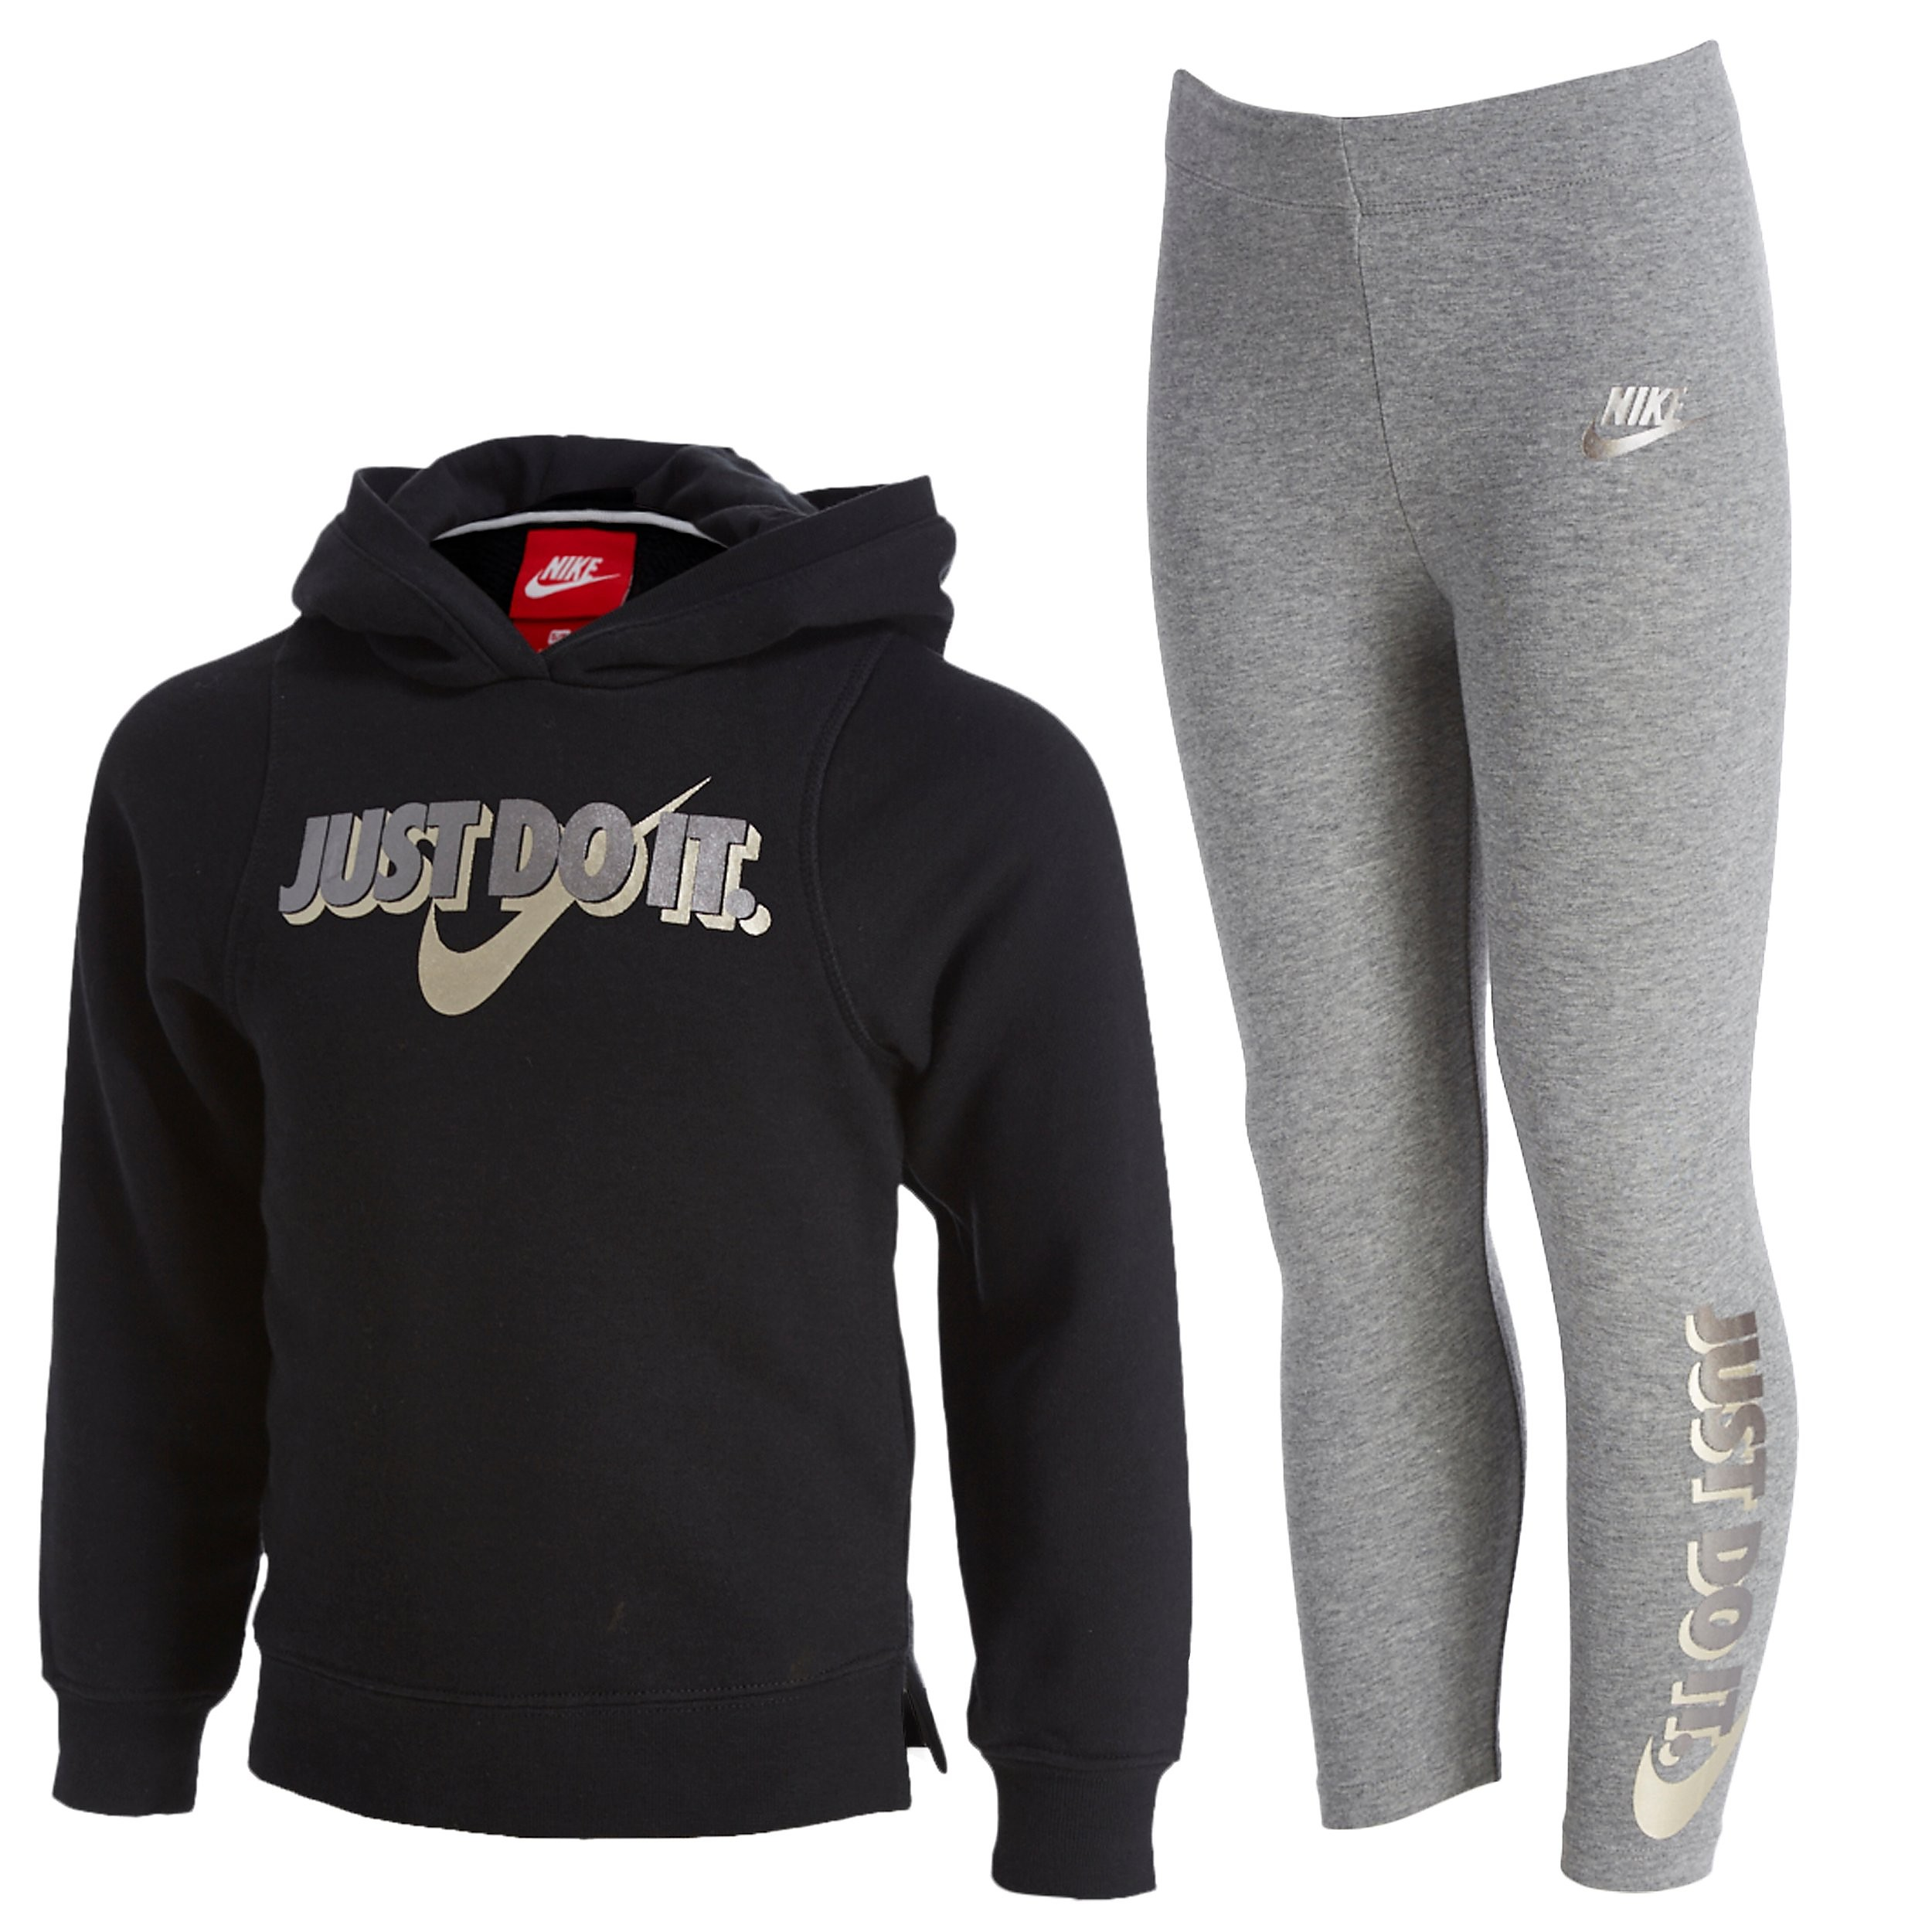 Nike Girls' Just Do It Hoodie/Leggings Set Children